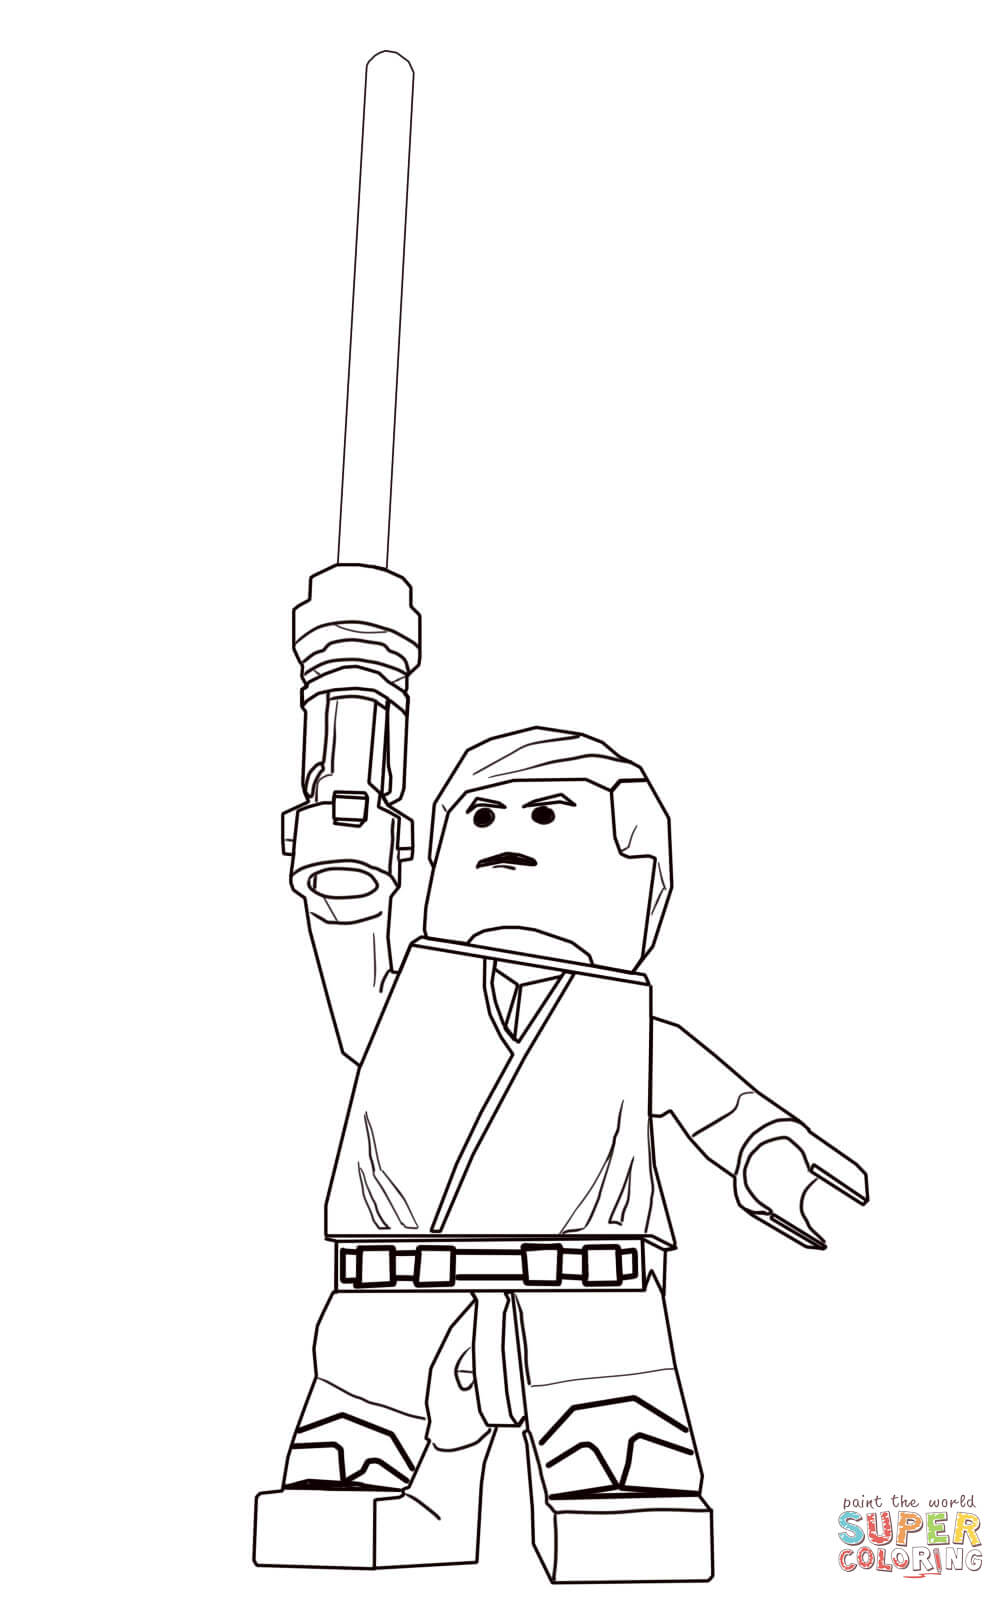 Lego Star Wars Luke Skywalker Coloring Page